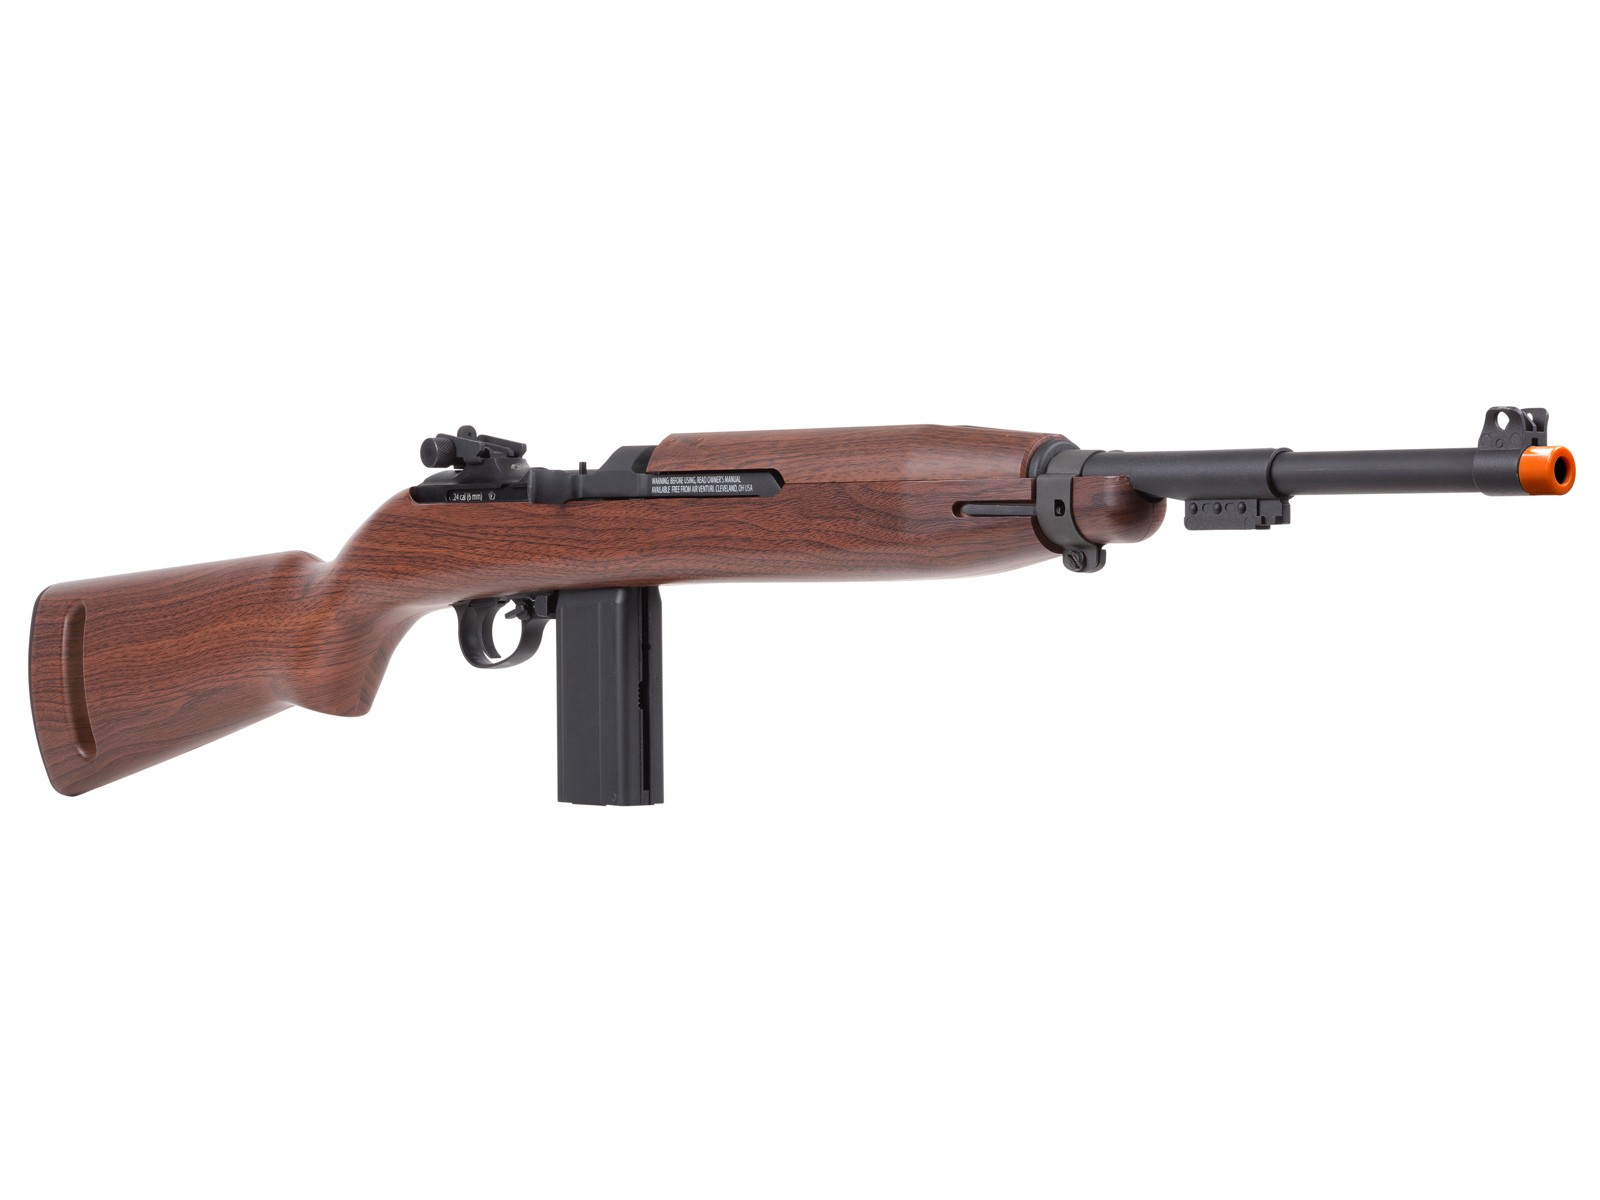 Cheap Springfield Armory M1 Carbine CO2 Blowback Airsoft Rifle 6mm